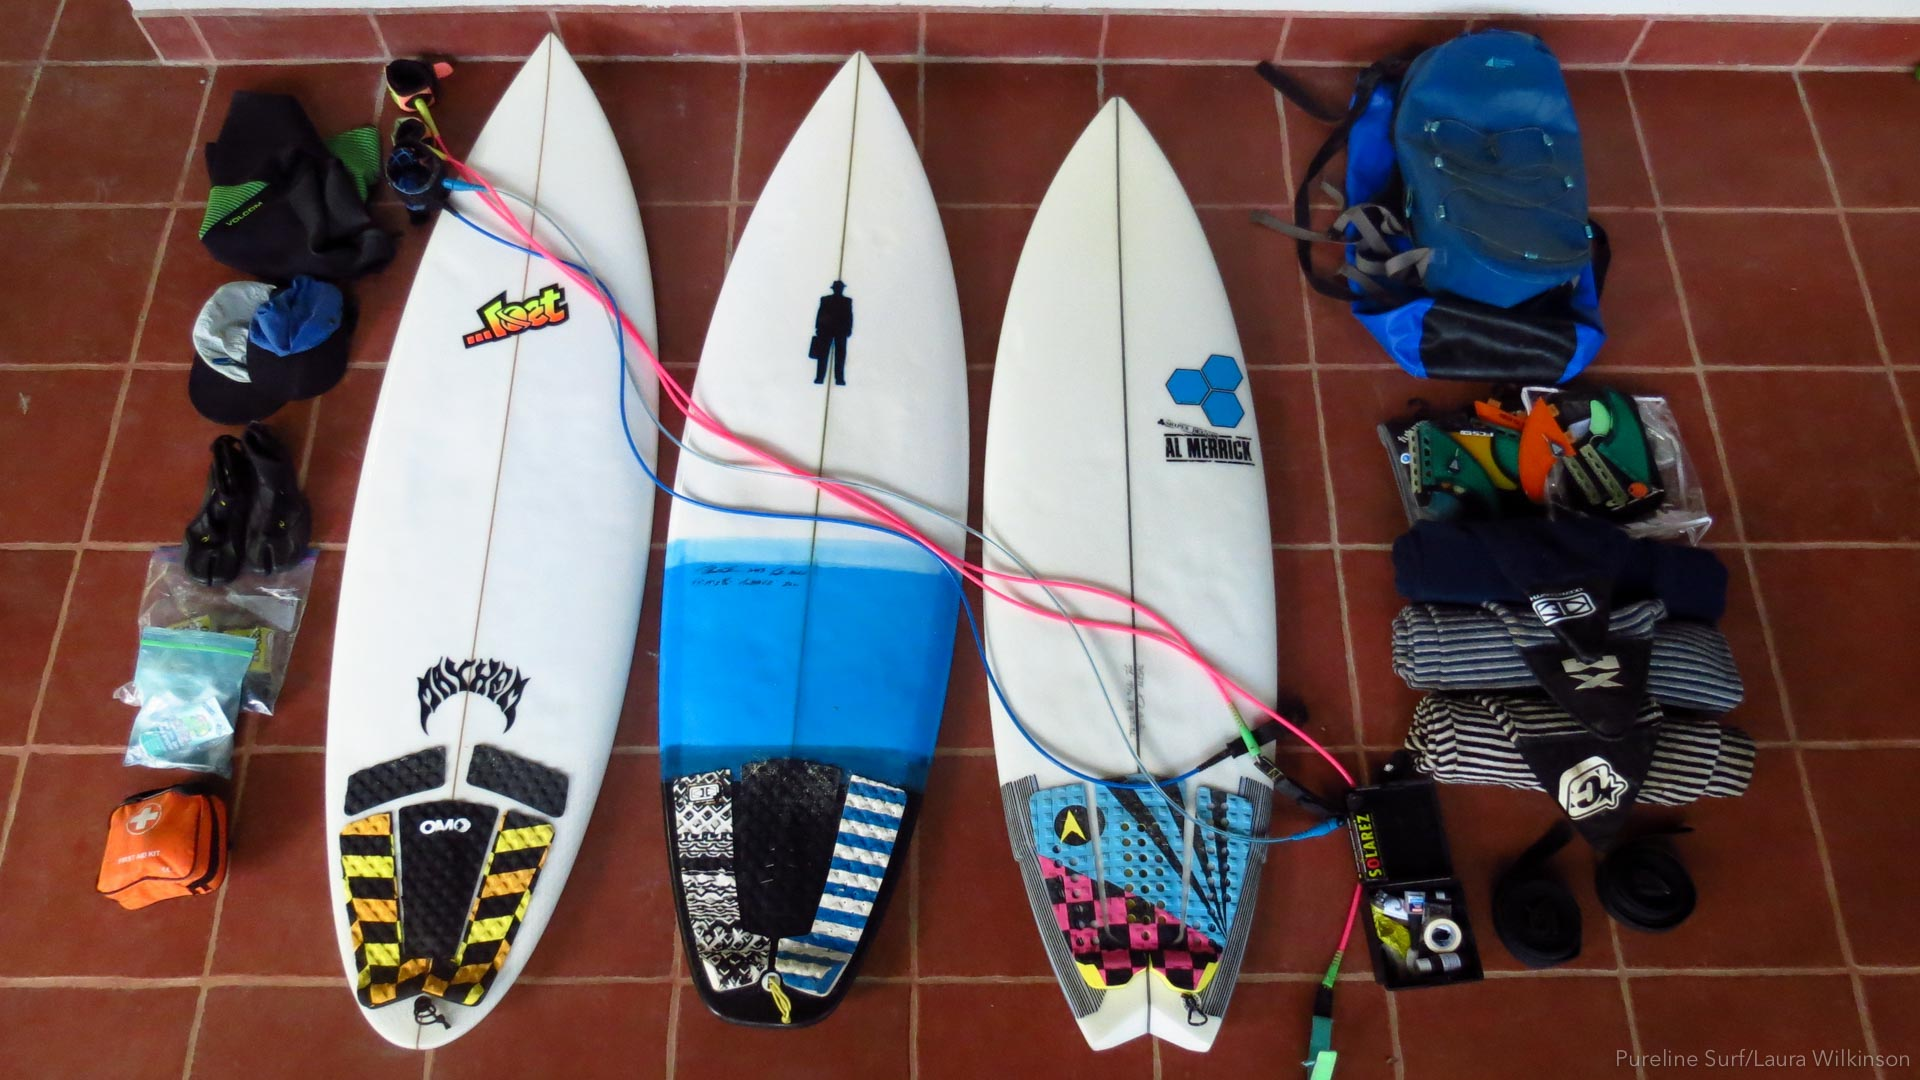 Three shortboards laid out with fins, leashes, and other items used on surf trips with Pureline Surf.